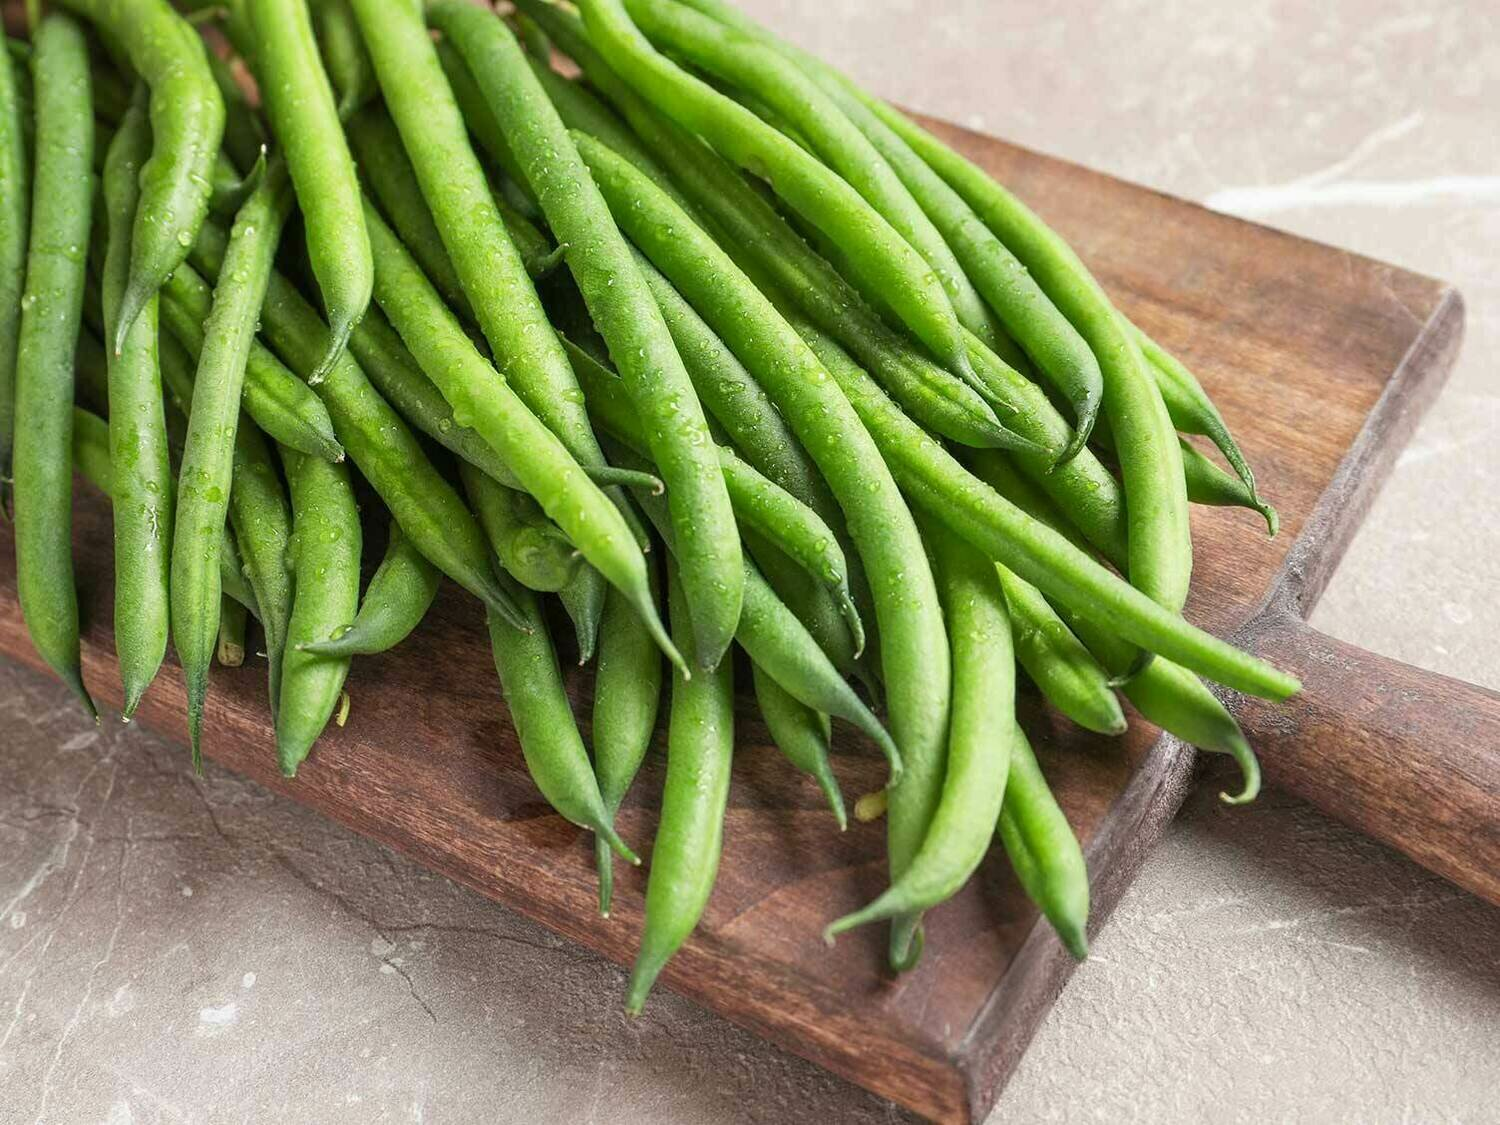 Fine bean لوبيا رفيعة (Kg) - Our Selection